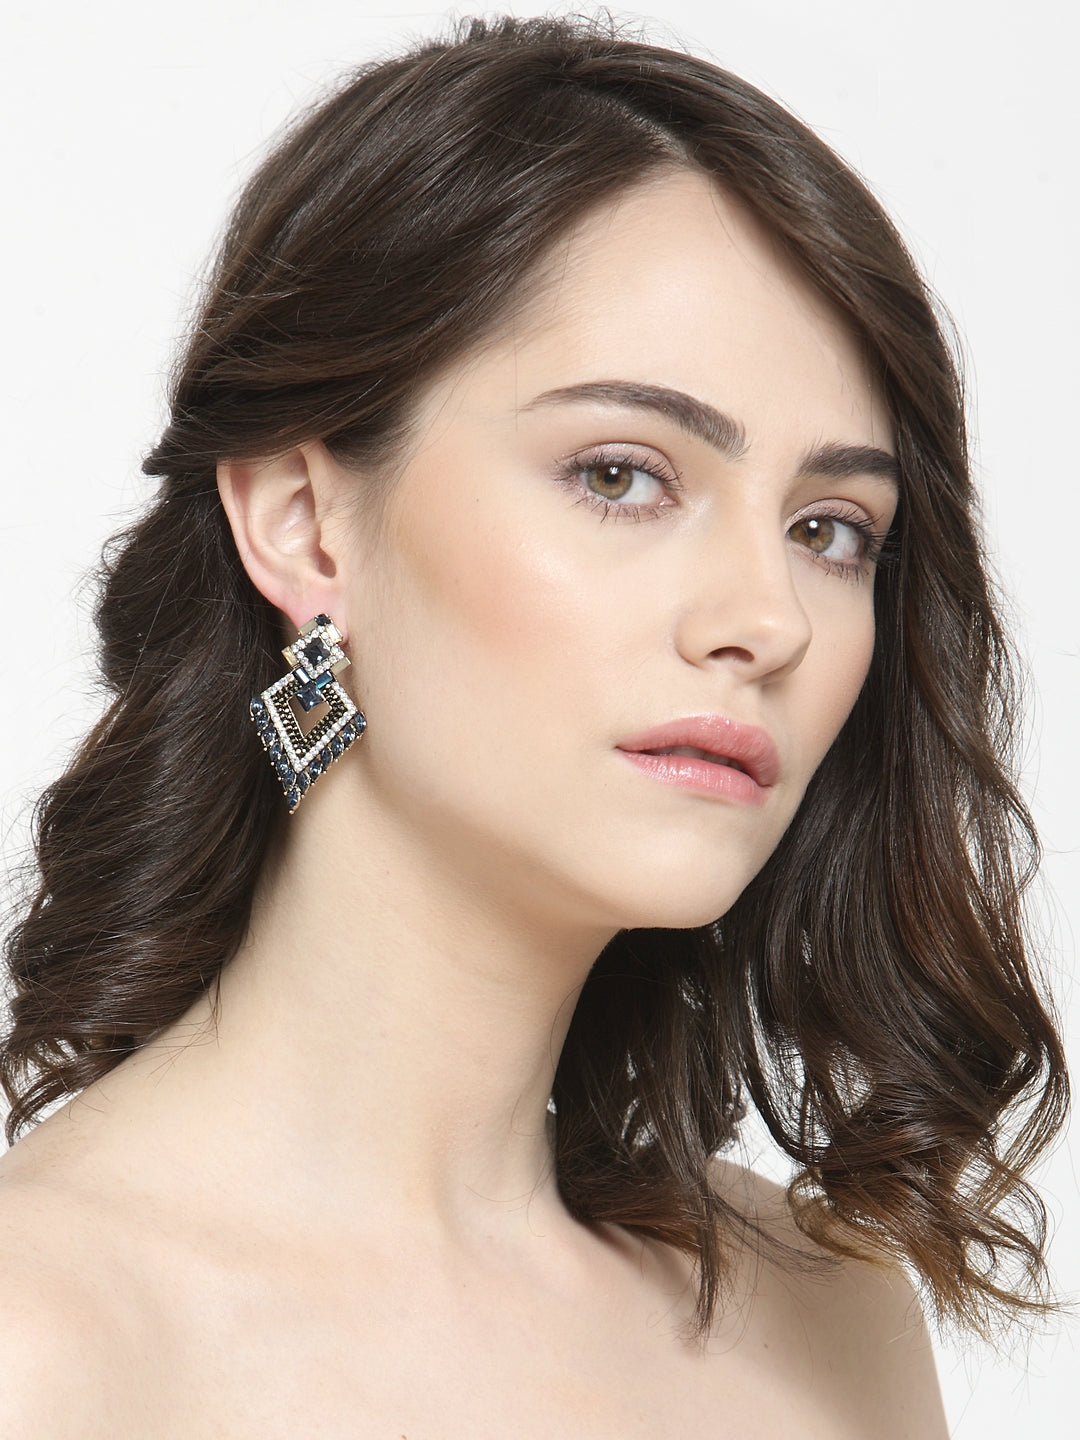 Avant-Garde Paris Vintage Crystal Stud Earrings